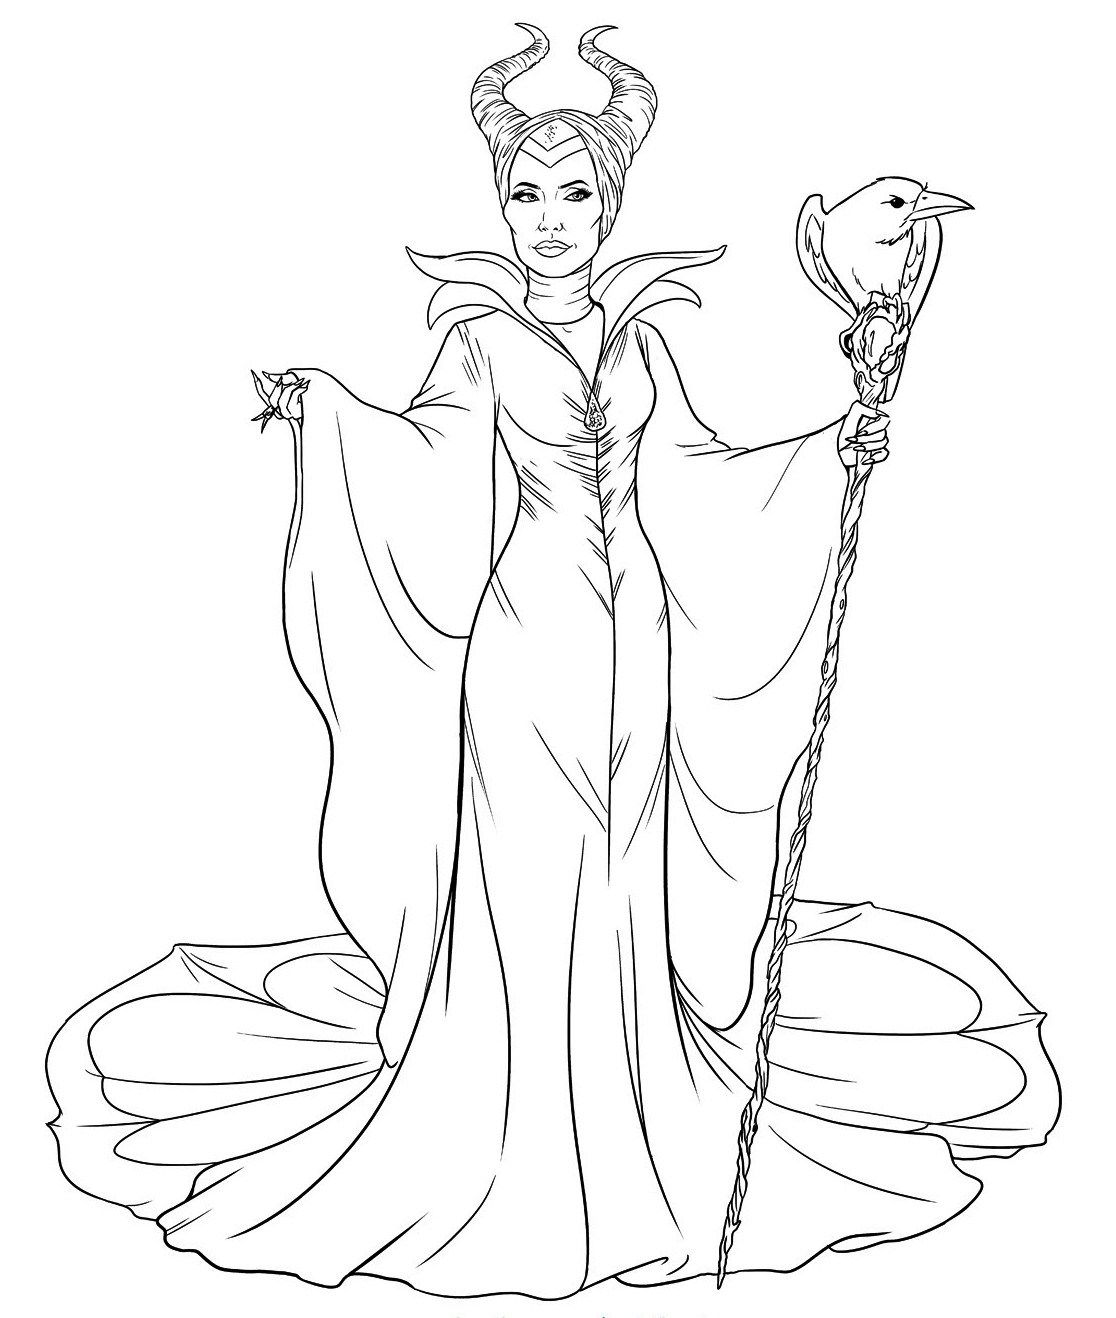 Maleficent Colouring Sheets Fairy Coloring Pages Sleeping Beauty Coloring Pages Cartoon Coloring Pages